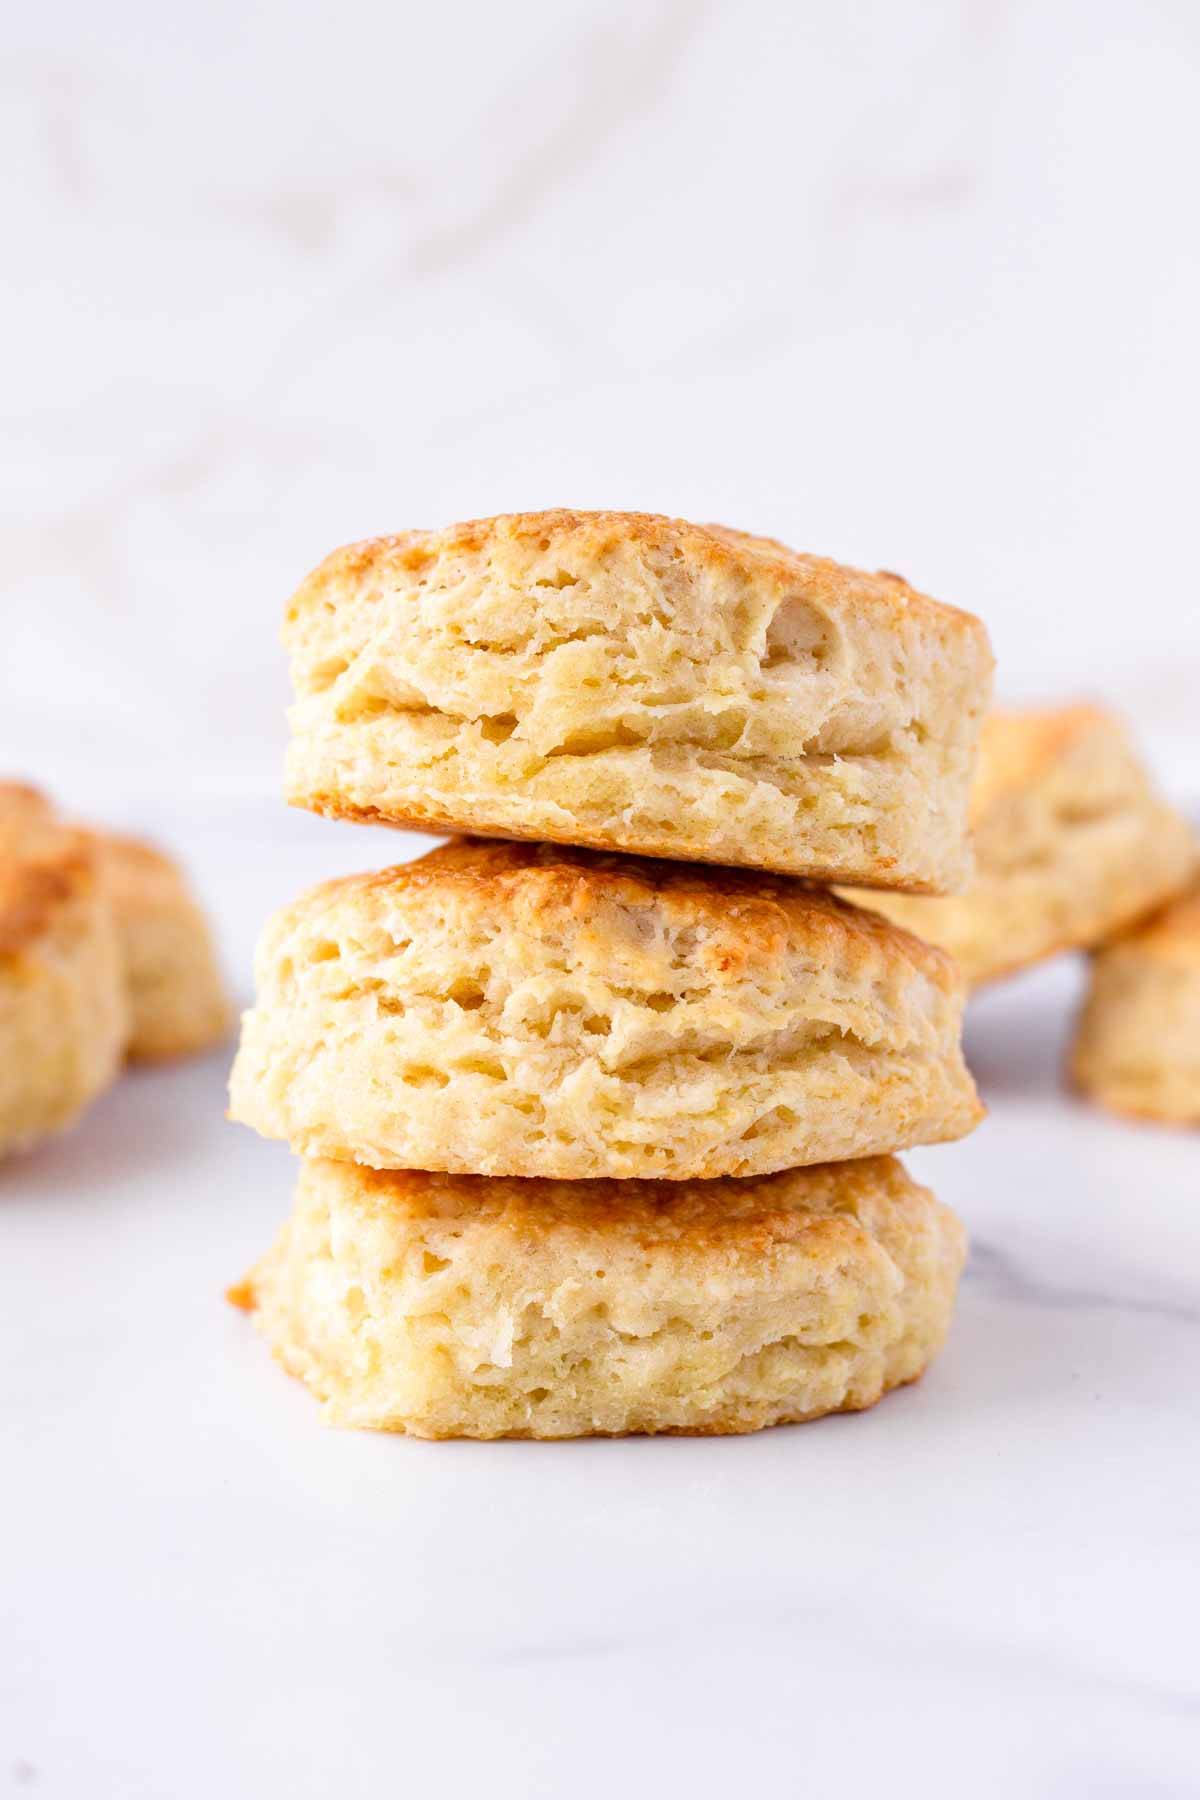 three flaky southern biscuits stacked on top of each other